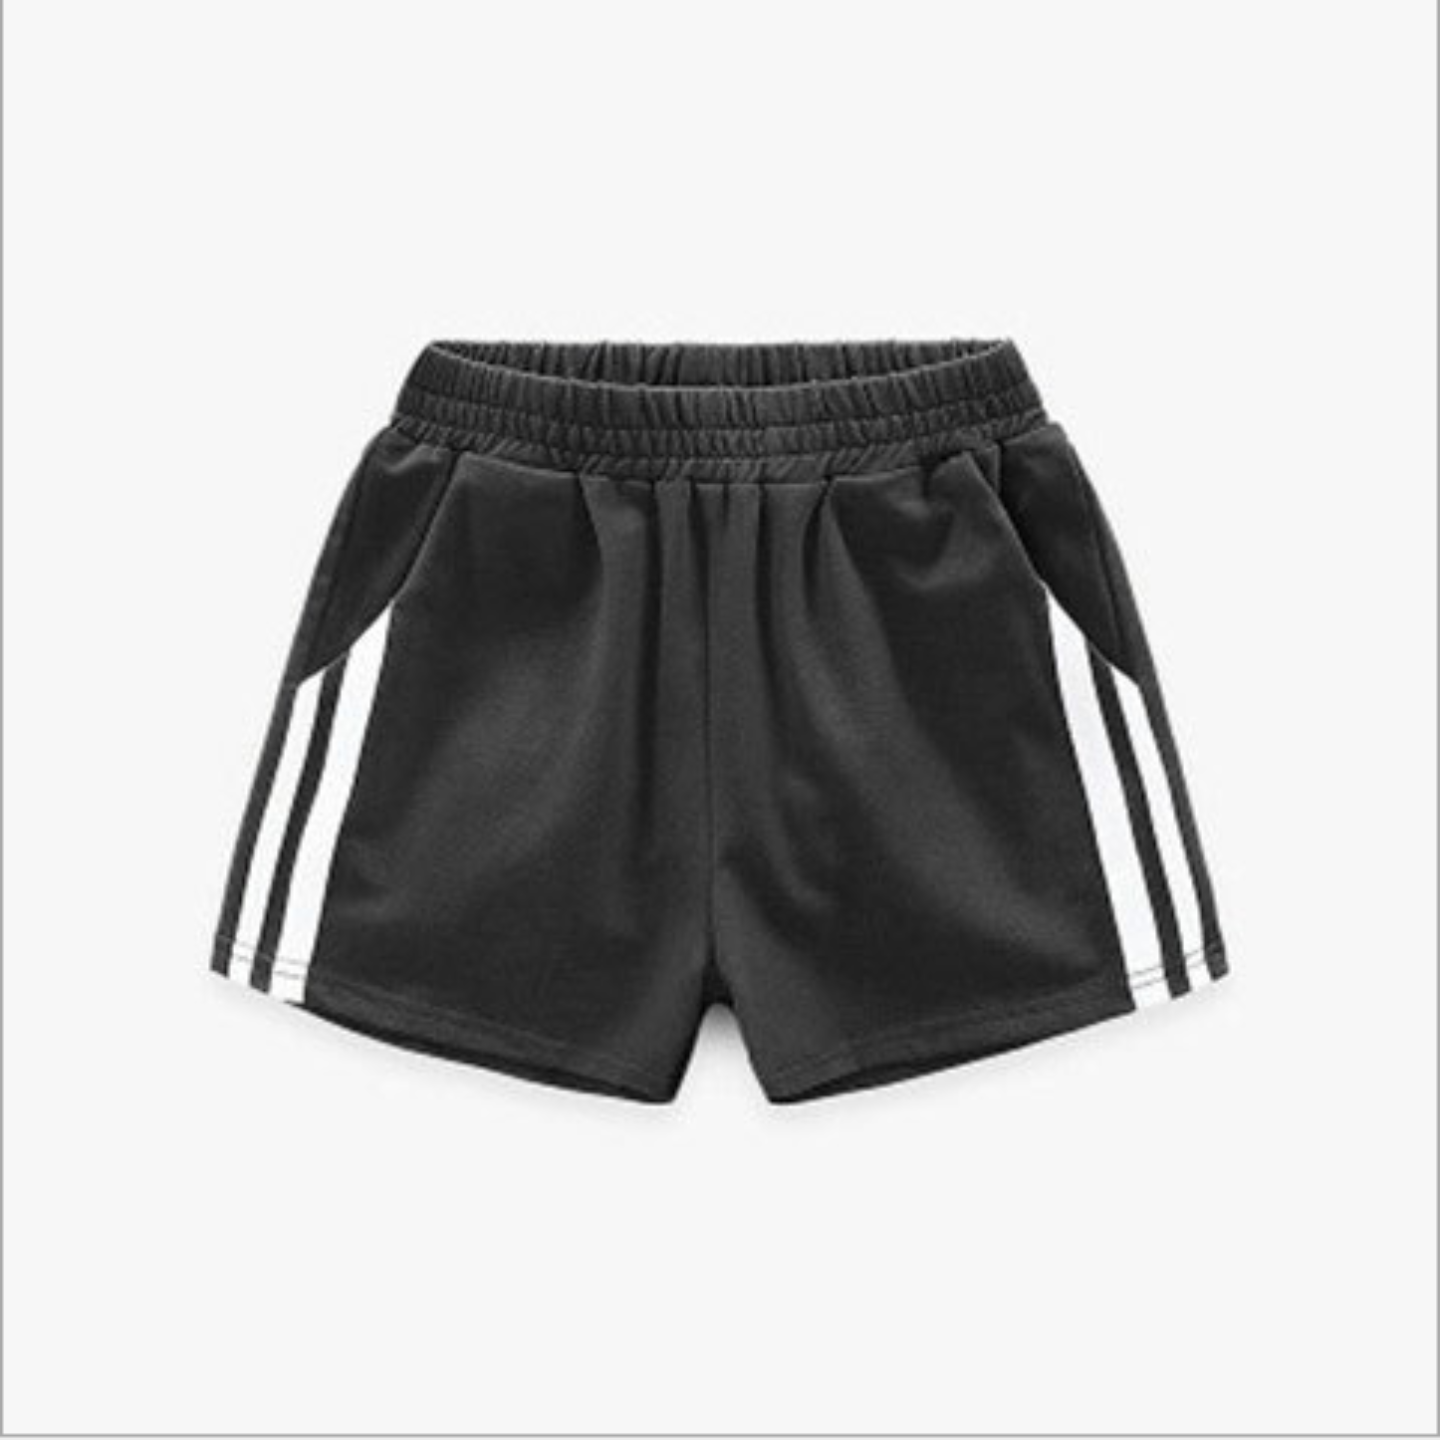 Children's Cotton Sports Shorts Black